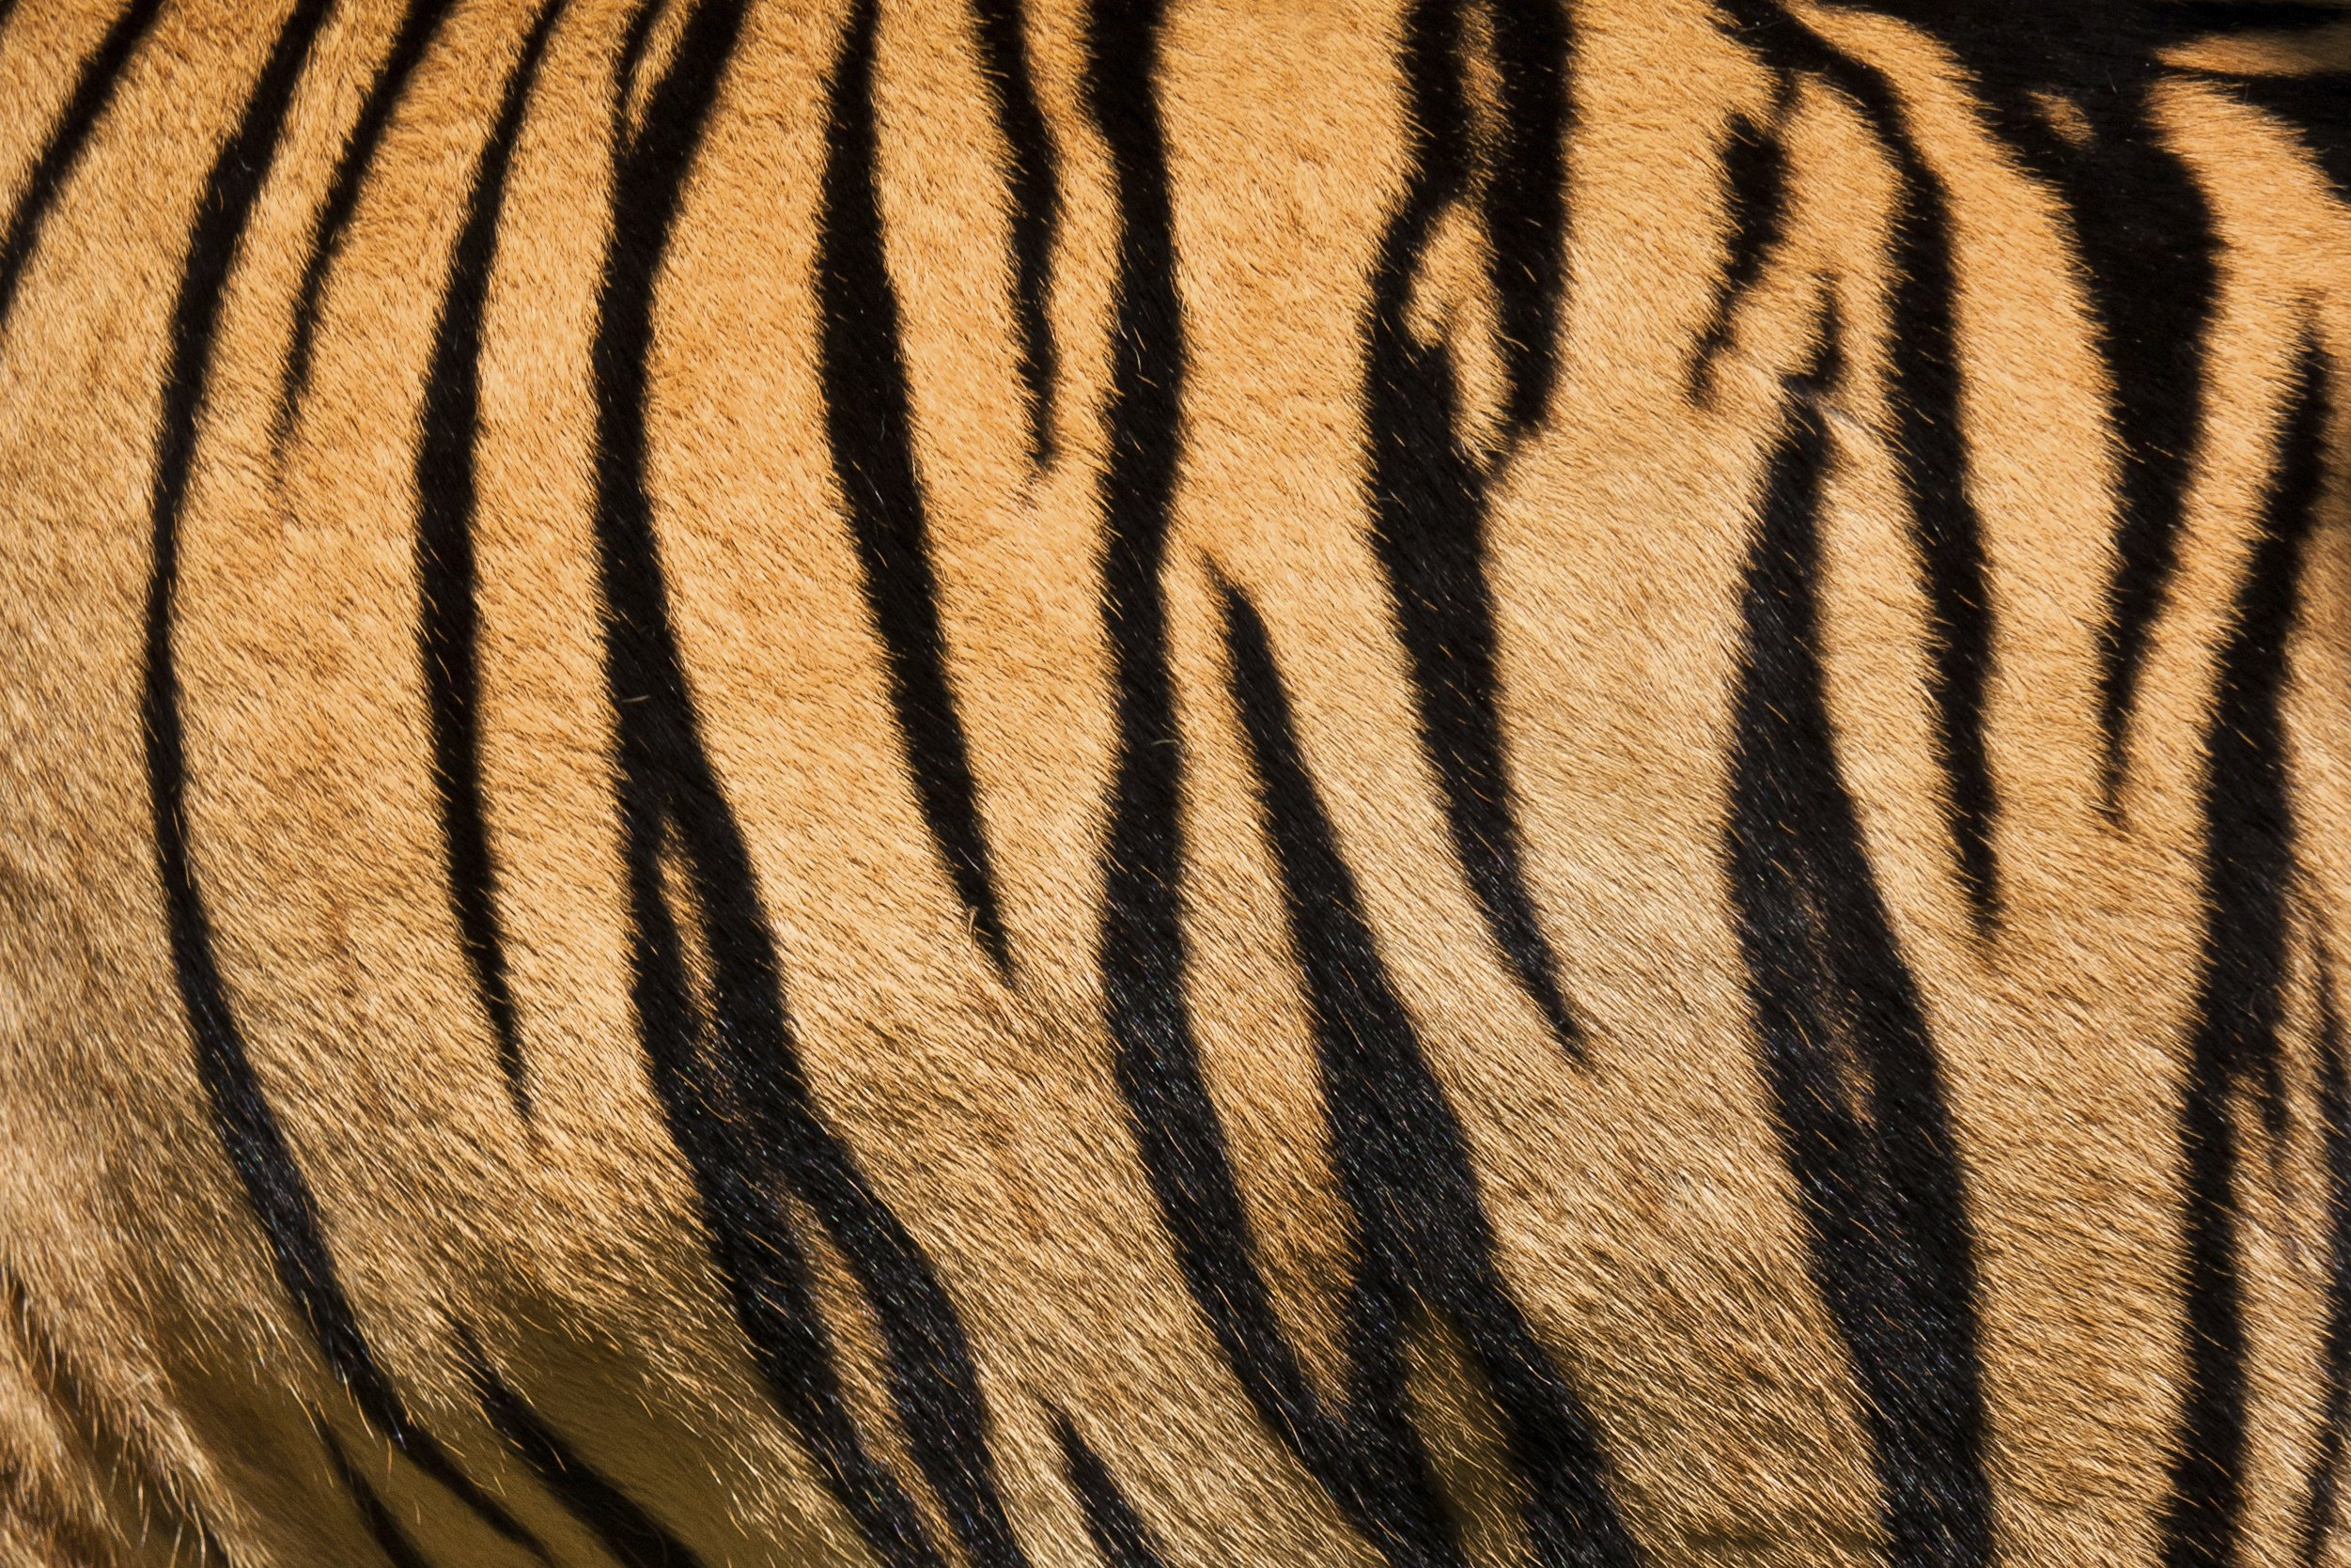 How to Make Tiger Stripe Patterns | eHow - photo#16